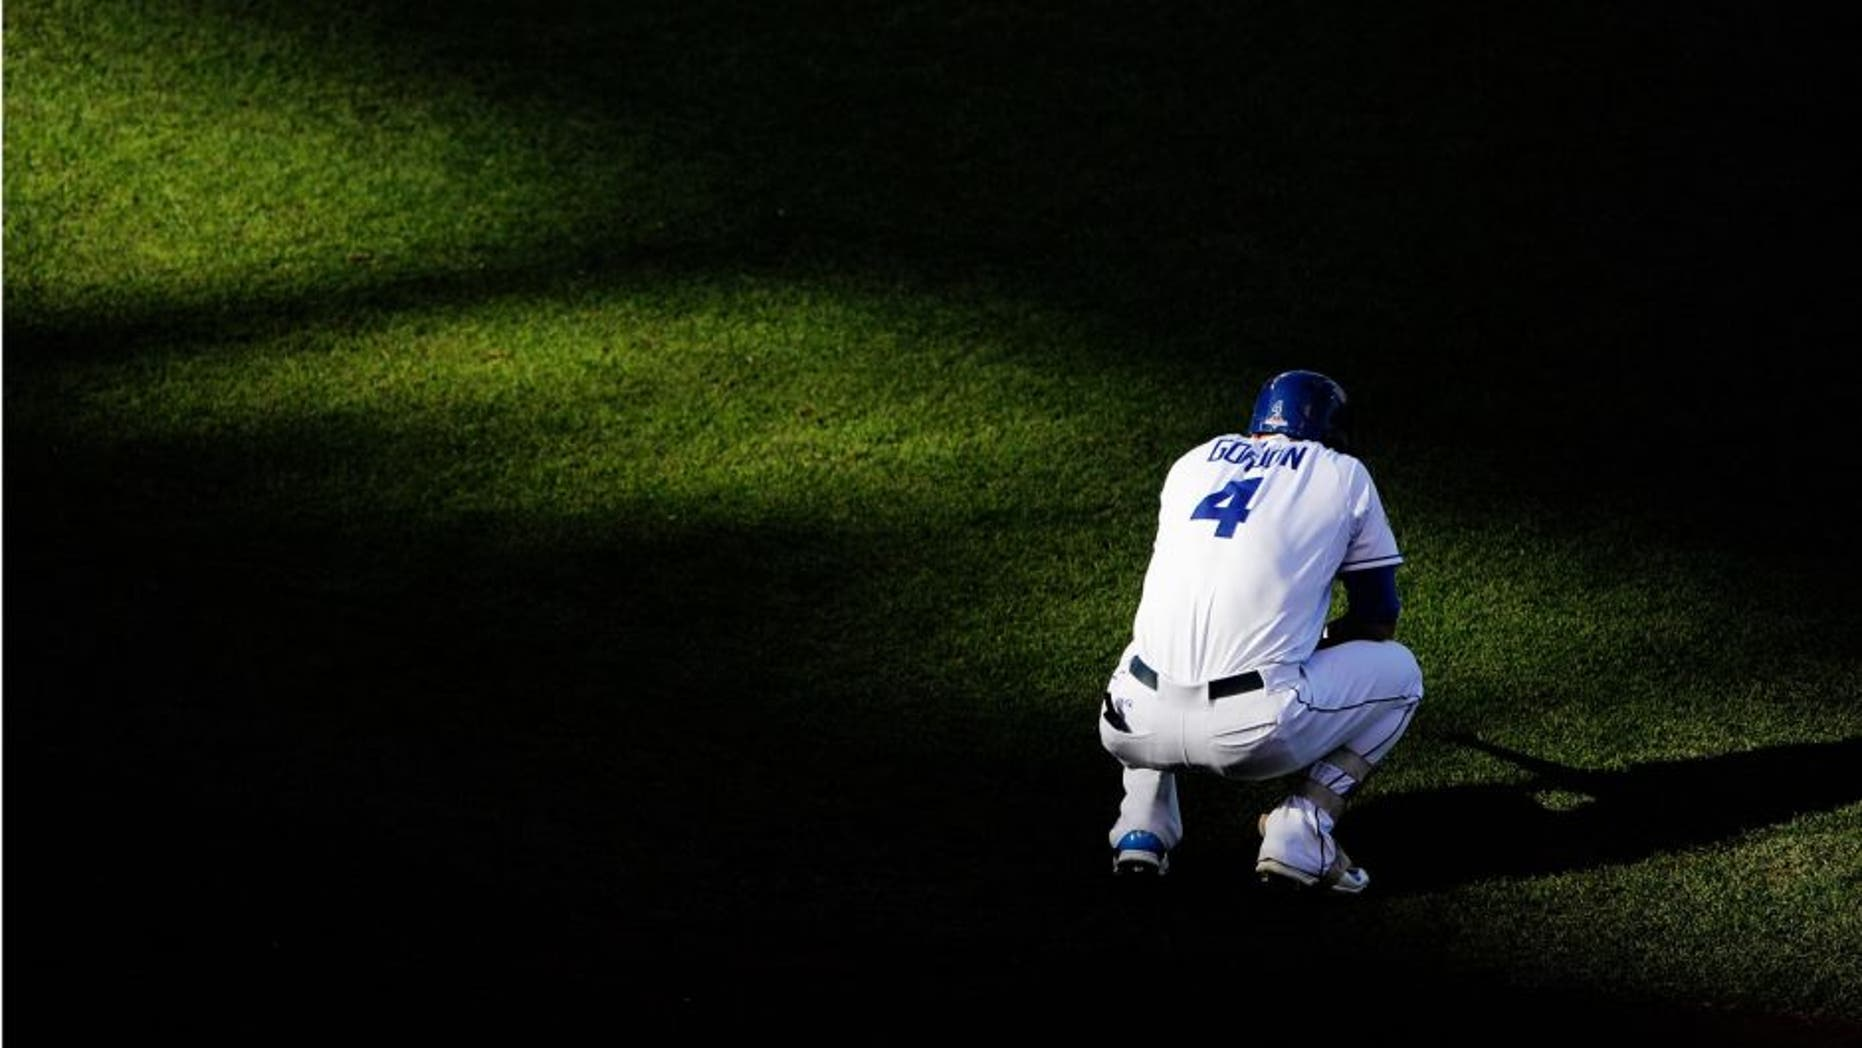 KANSAS CITY, MO - OCTOBER 17: Alex Gordon #4 of the Kansas City Royals waits to bat in the second inning against the Toronto Blue Jays in game two of the American League Championship Series at Kauffman Stadium on October 17, 2015 in Kansas City, Missouri. (Photo by Ed Zurga/Getty Images)